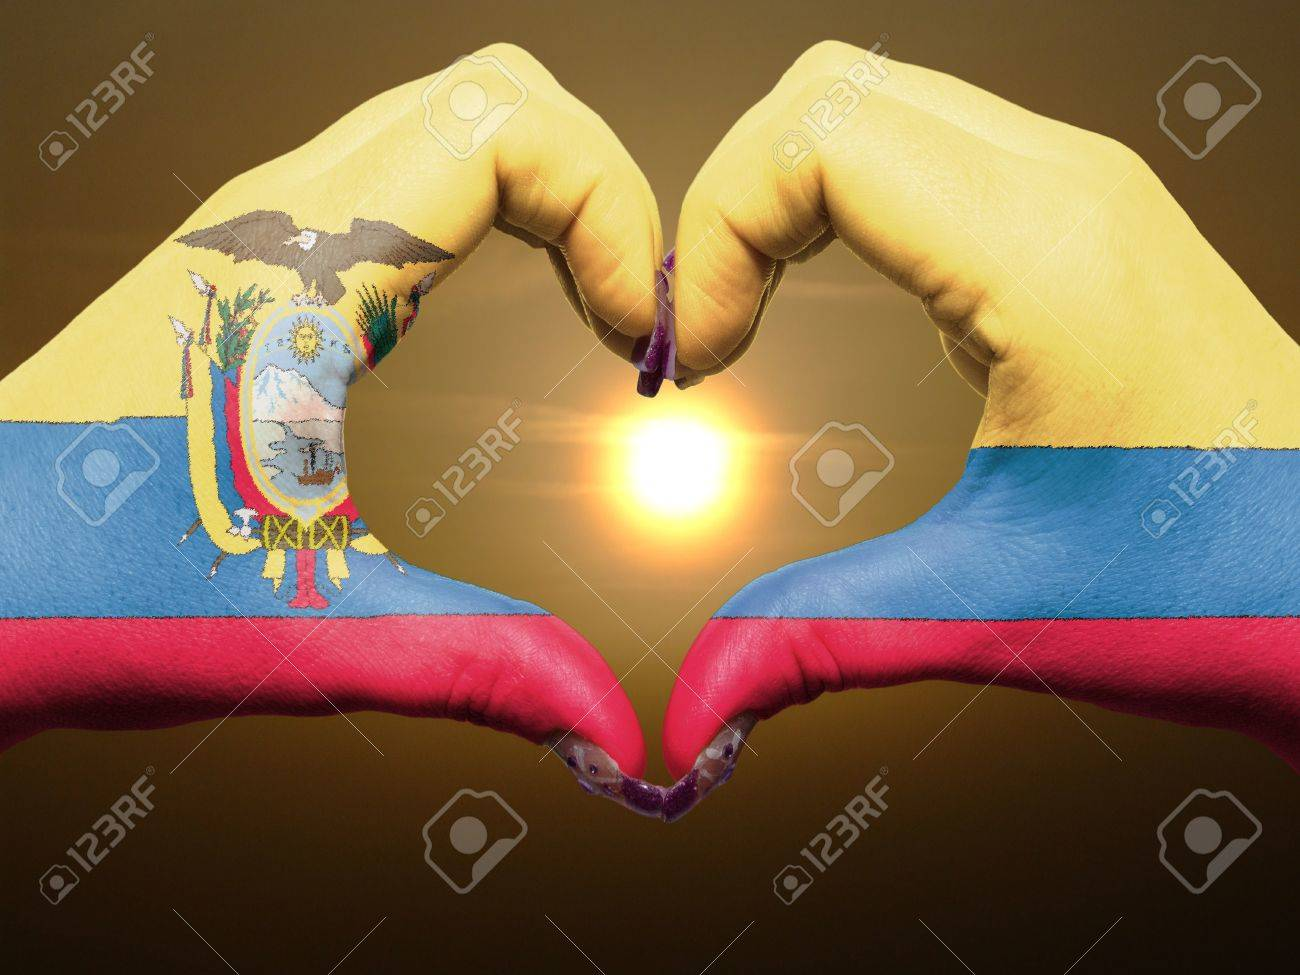 Gesture made by ecuador flag colored hands showing symbol of heart and love during sunrise Stock Photo - 12981544